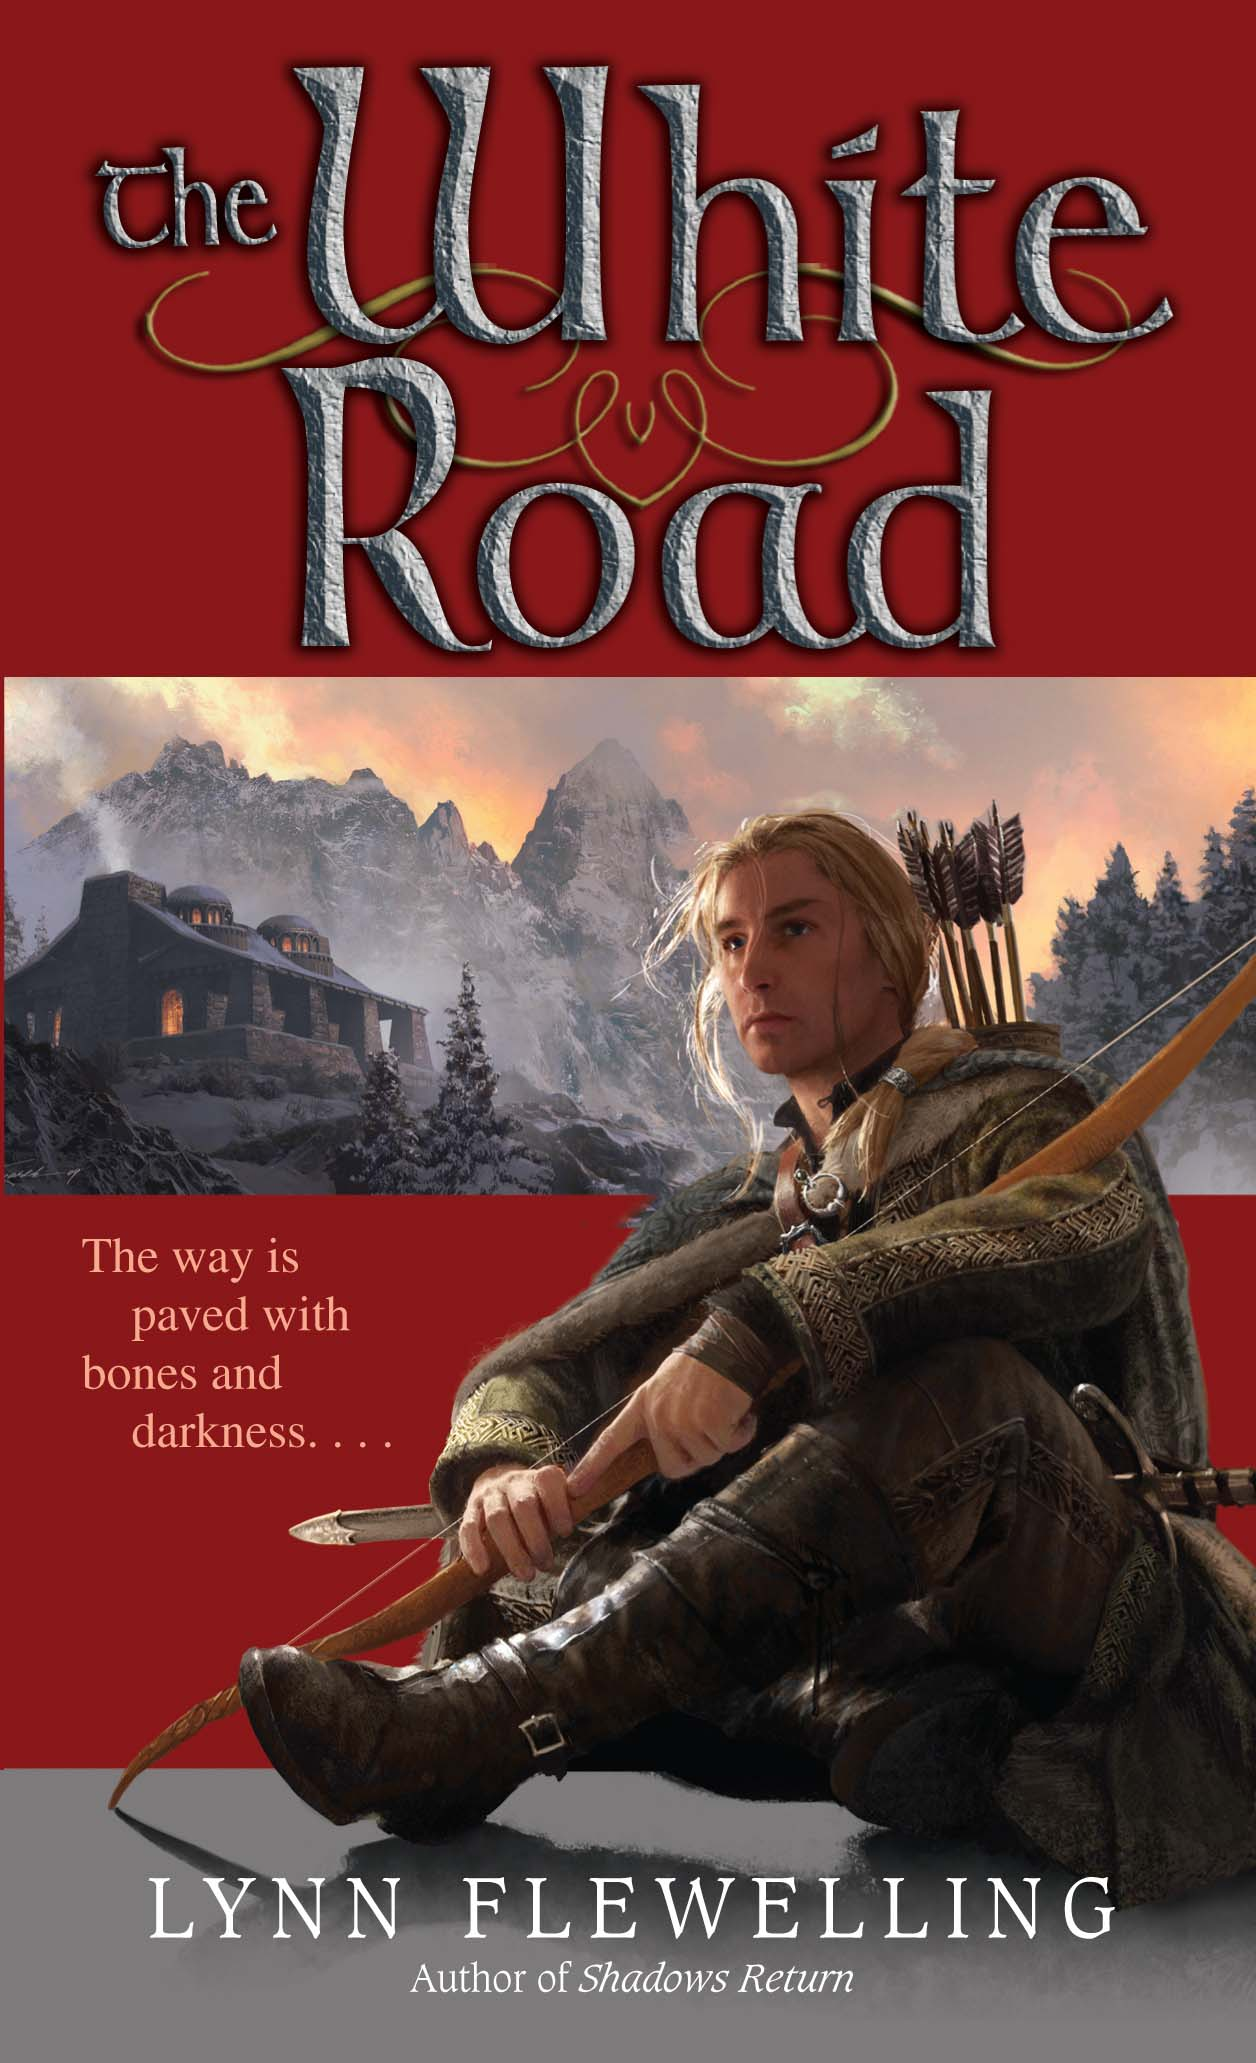 Cover of Lynn Flewelling's Book The White Road